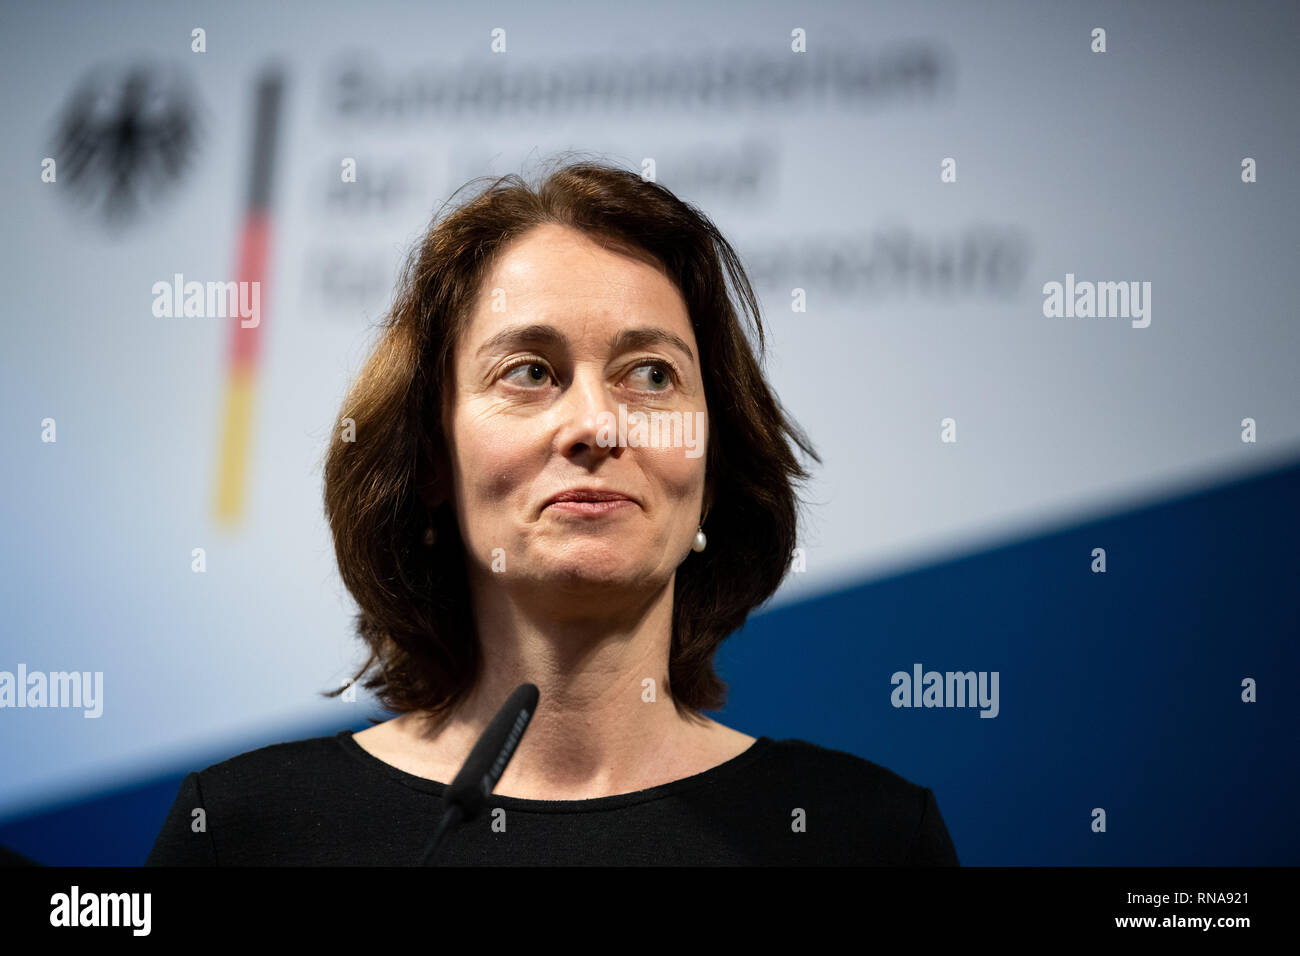 """Berlin, Germany. 18th Feb, 2019. Katarina Barley (SPD), Federal Minister of Justice, comments on the handover of and 4.7 million signatures to the Change.org campaign """"Save the Internet"""". The campaign is directed against articles 11 (ancillary copyright) and 13 (upload filters) of the EU copyright reform. Credit: Bernd von Jutrczenka/dpa/Alamy Live News Stock Photo"""